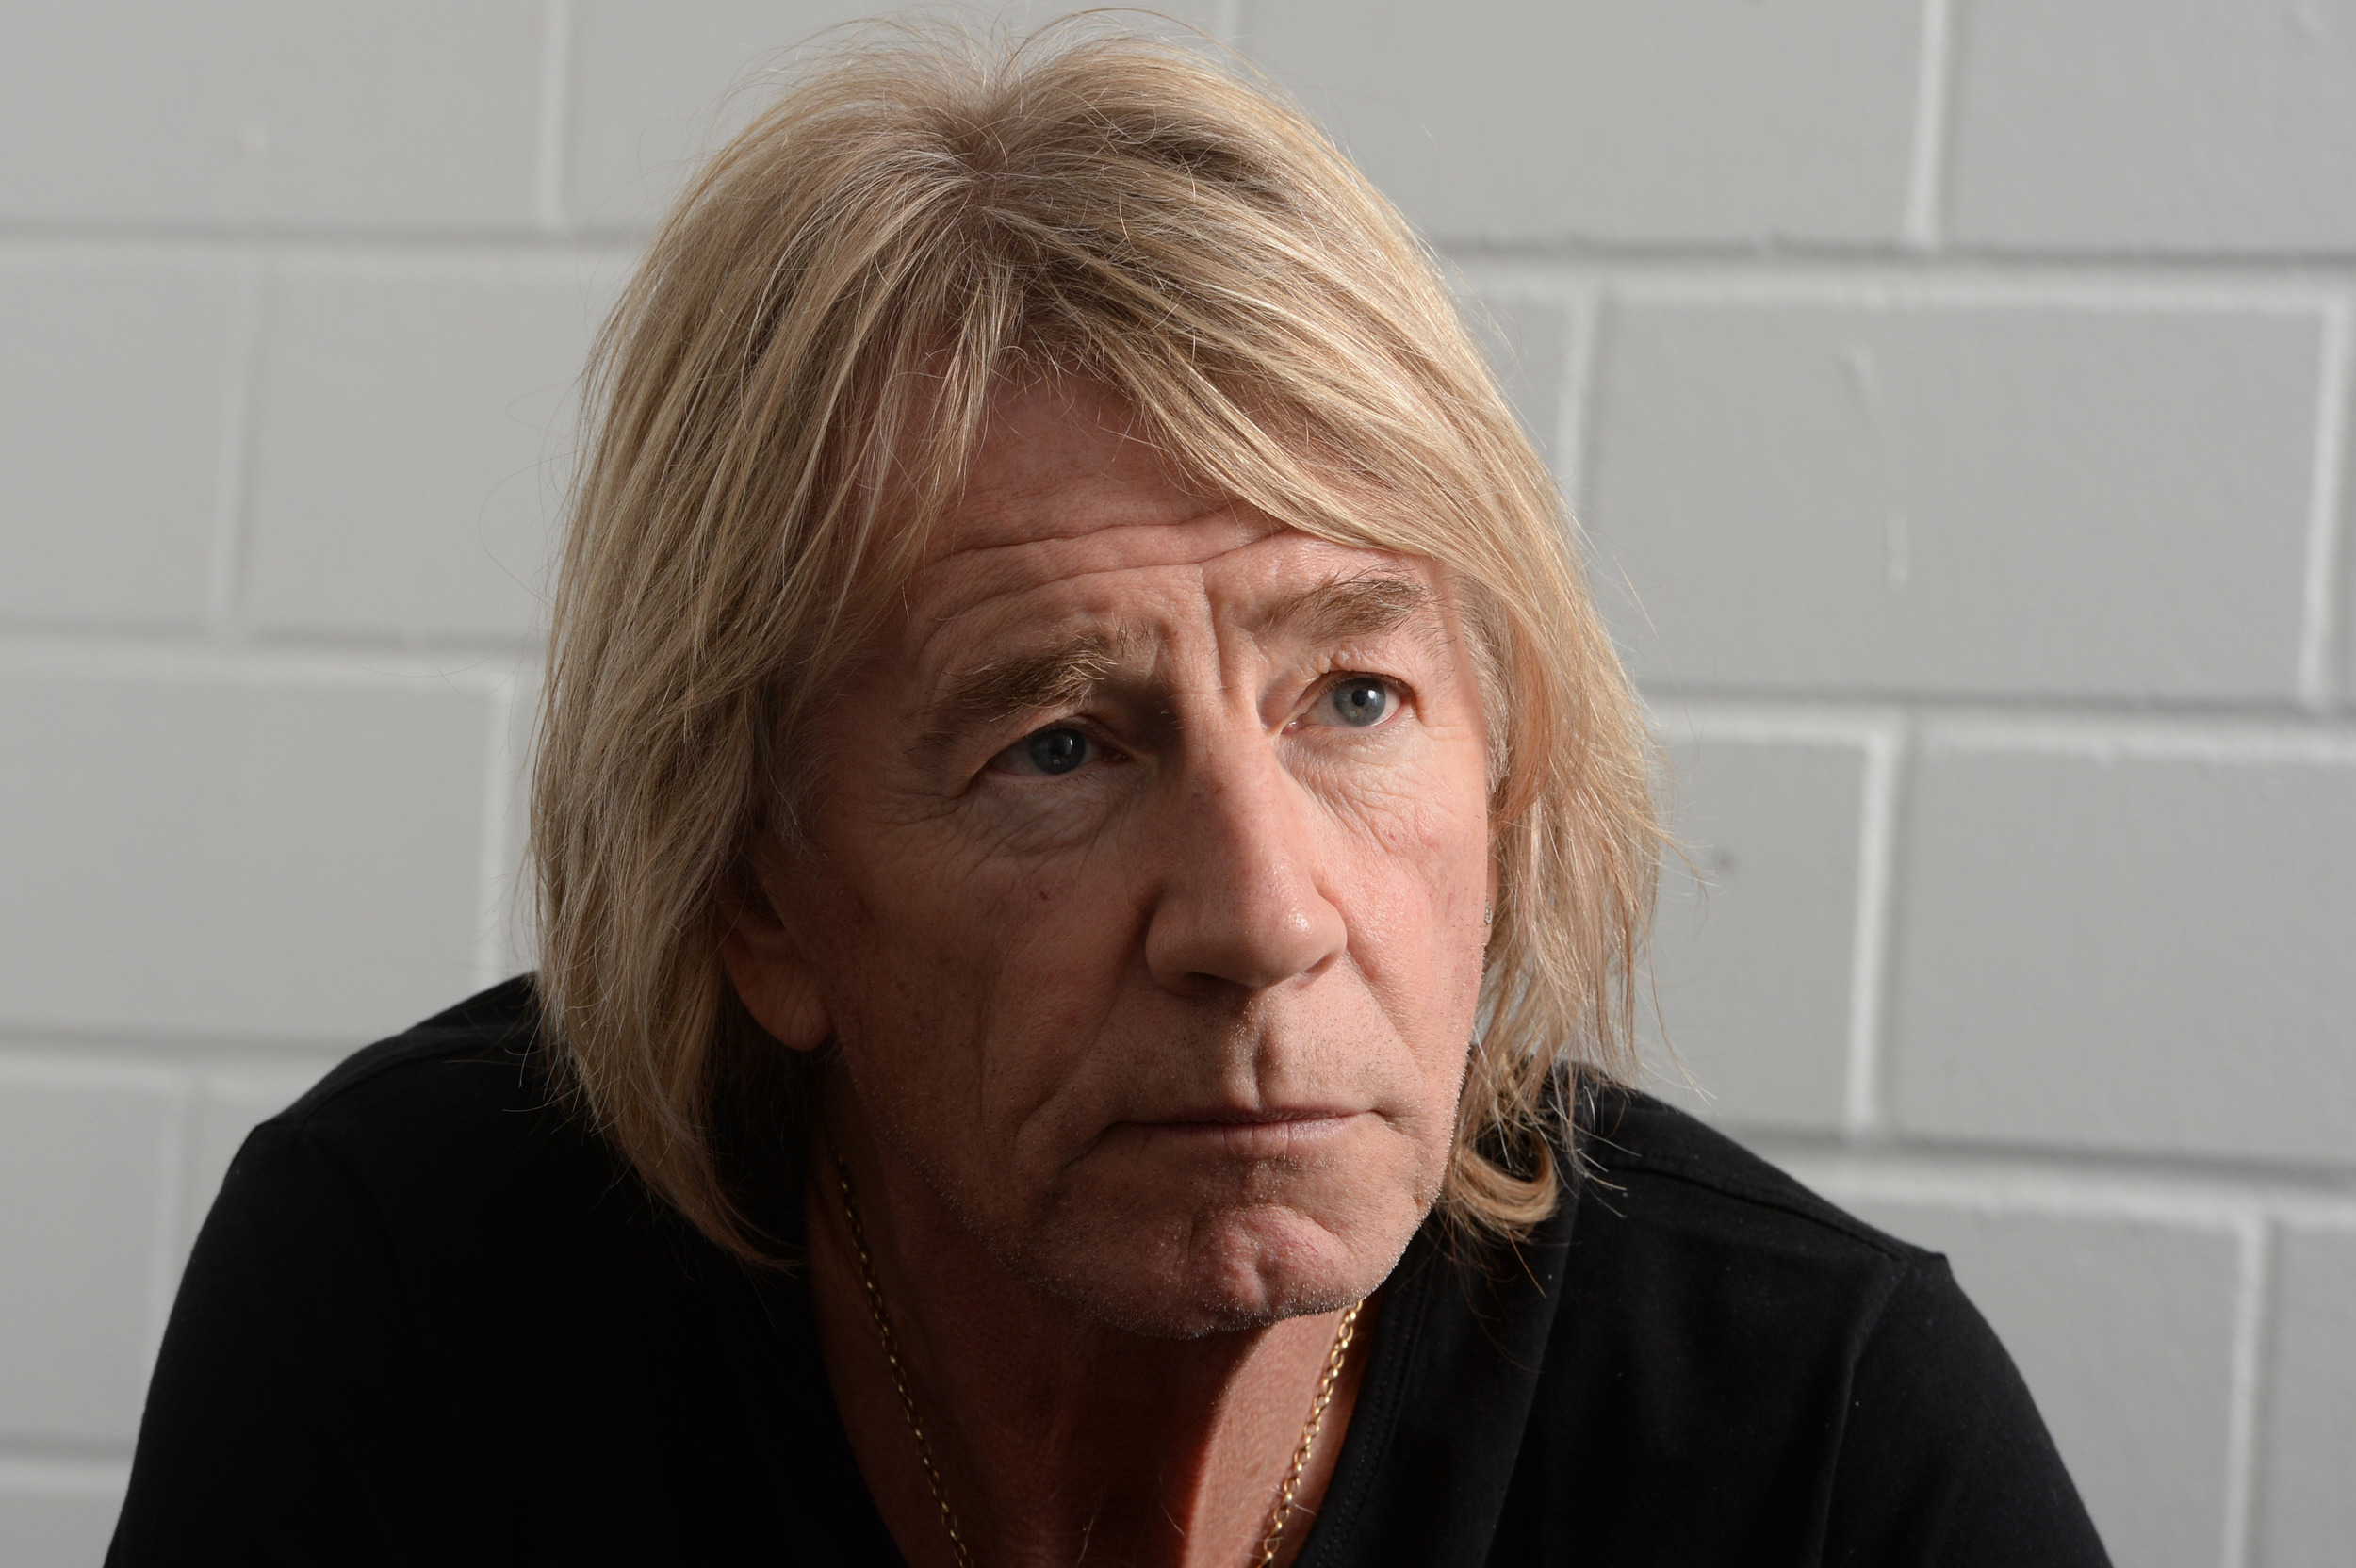 Quotes For Facebook Status About Life This Photo Rick Parfit...